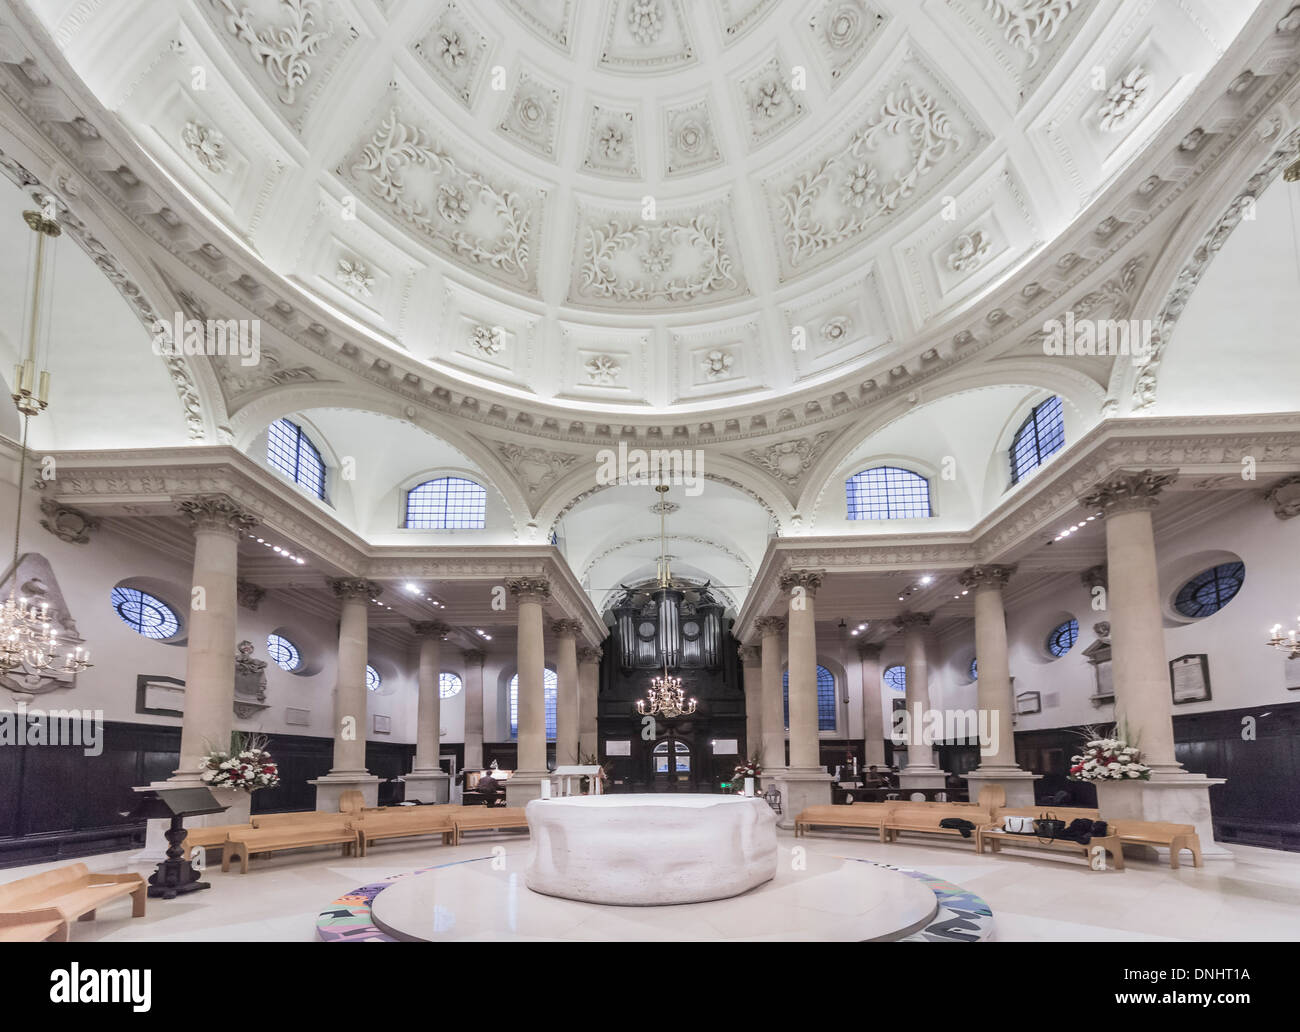 Perfect Stock Photo   The Church Of St Stephen Walbrook In The City Of London, EC4,  With Dome By Sir Christoper Wren And Altar By Henry Moore, Associated With  Chad ... Images